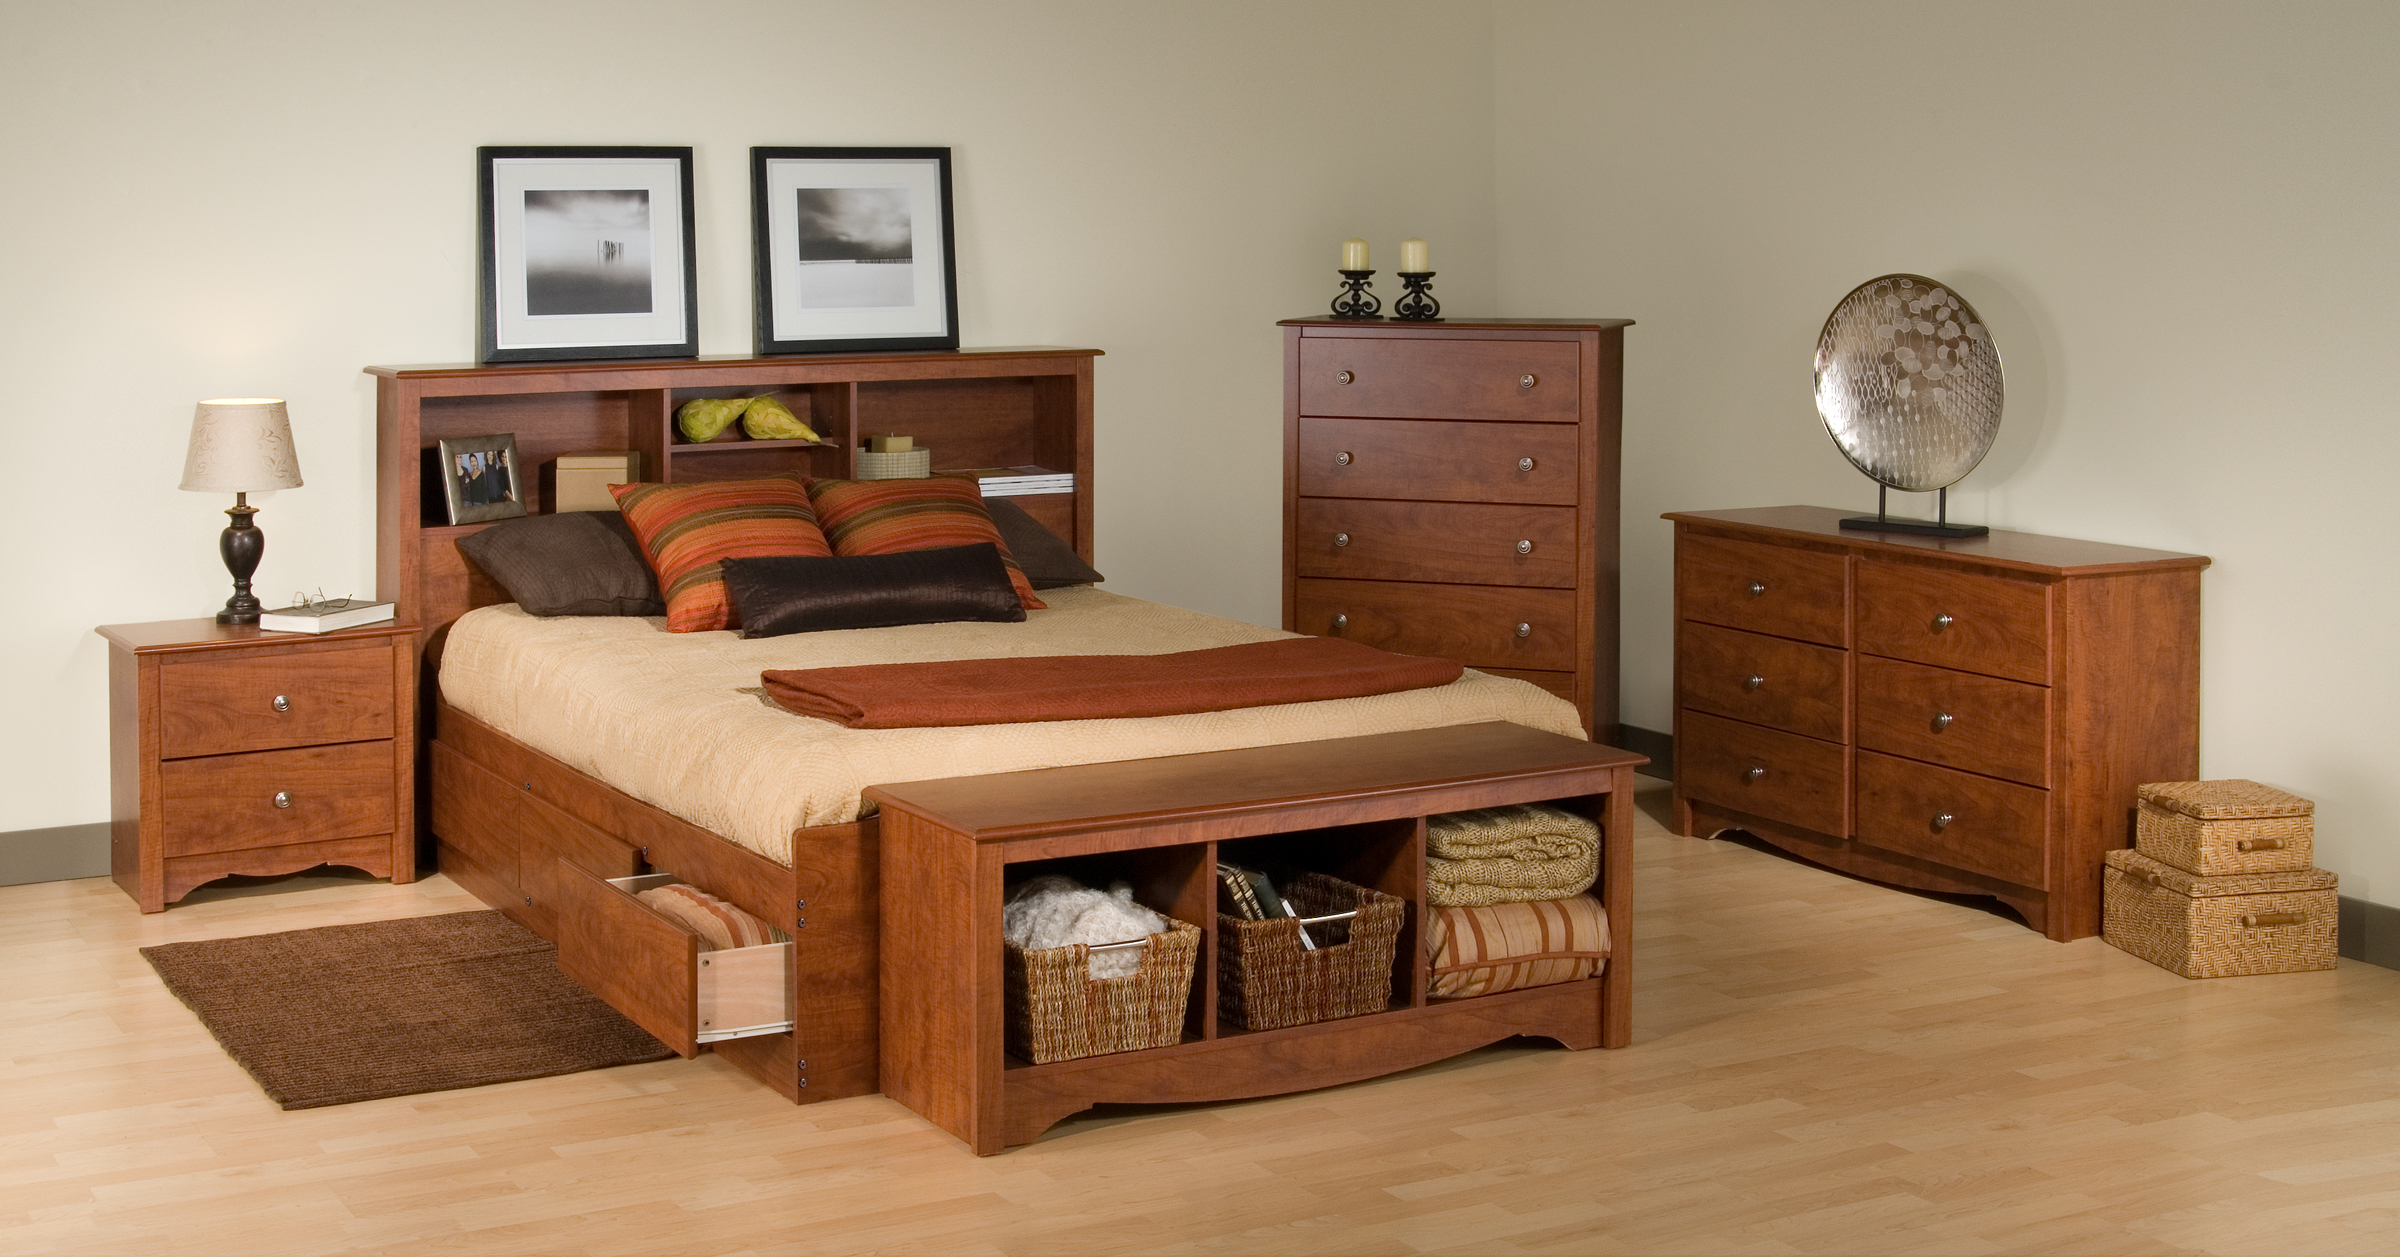 Home And Bedroom Back To School On Storage Beds Sale